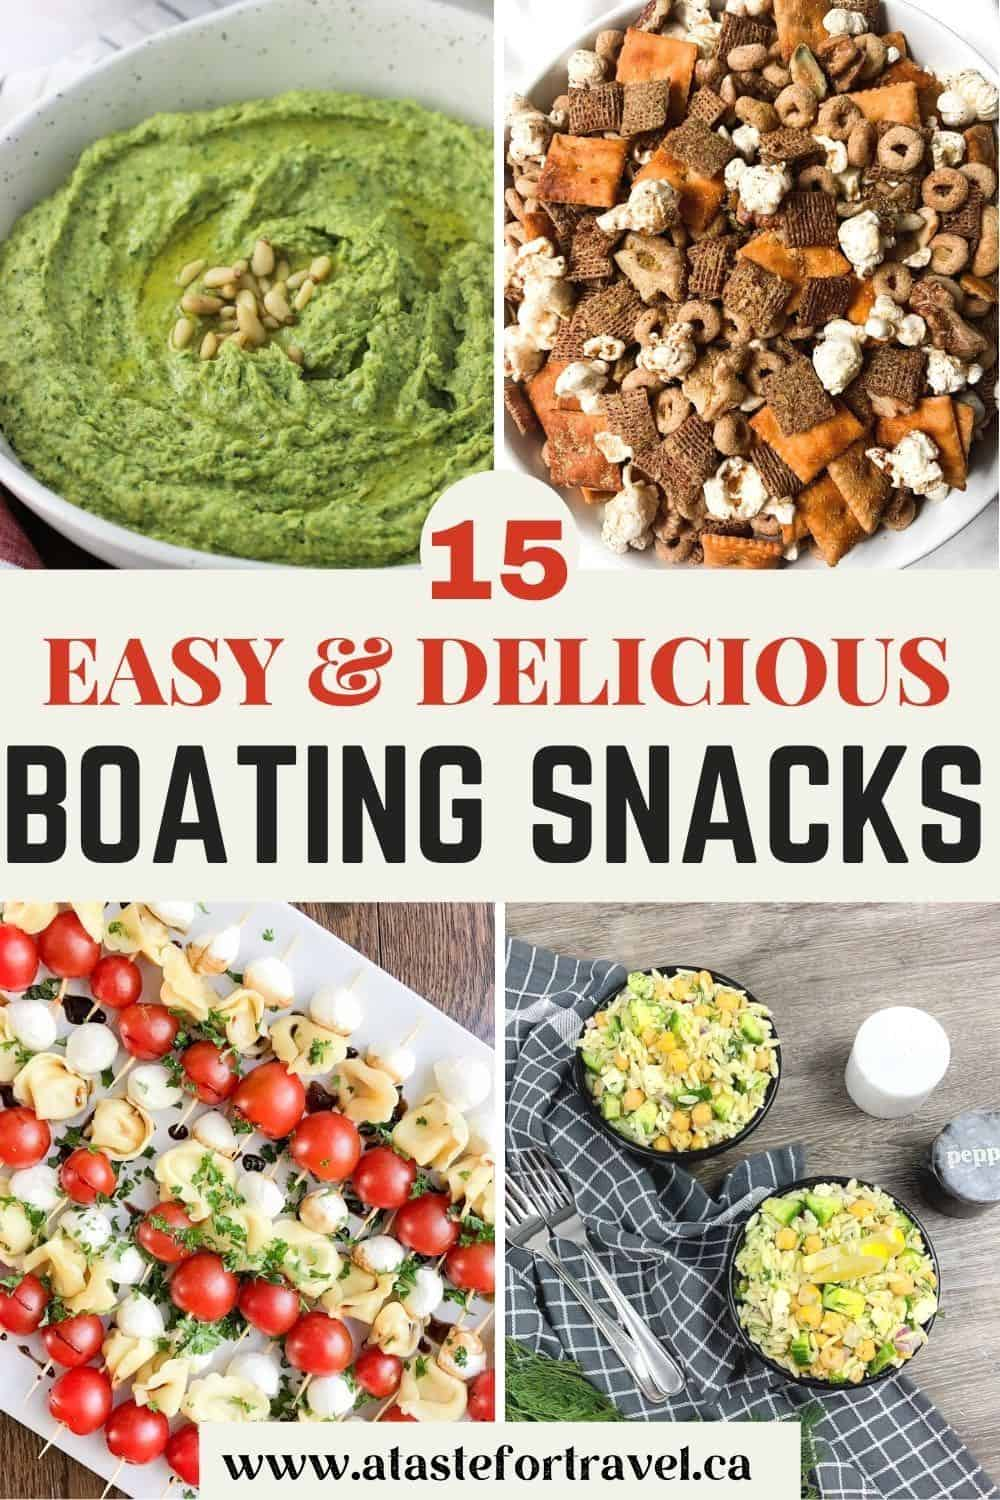 Collage of boat snacks with Pinterest text overlay.